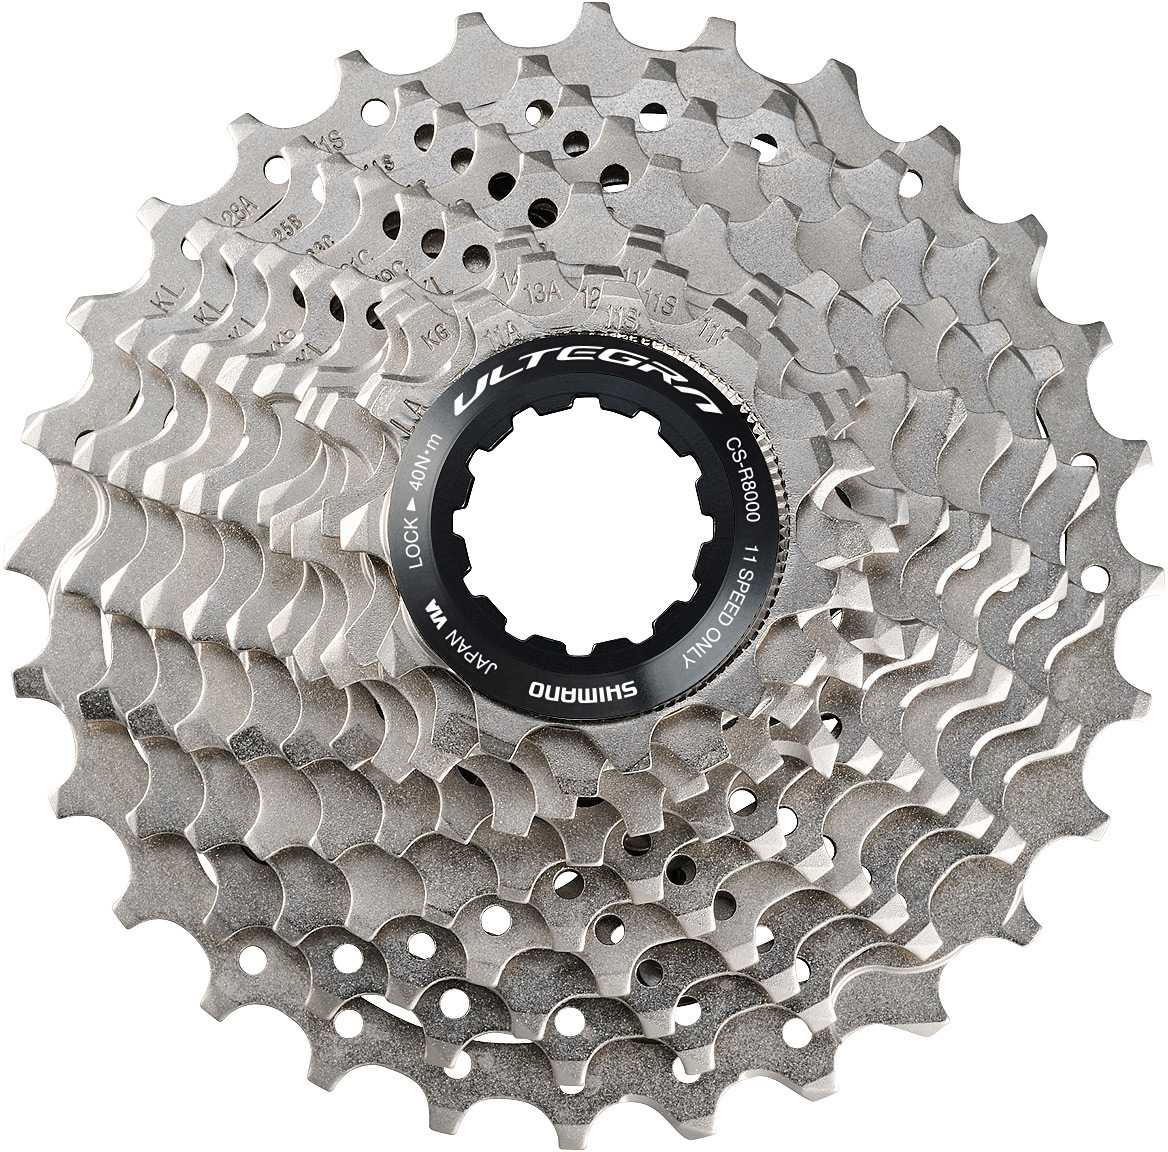 CS-R8000 Ultegra 11-speed cassette 11-32